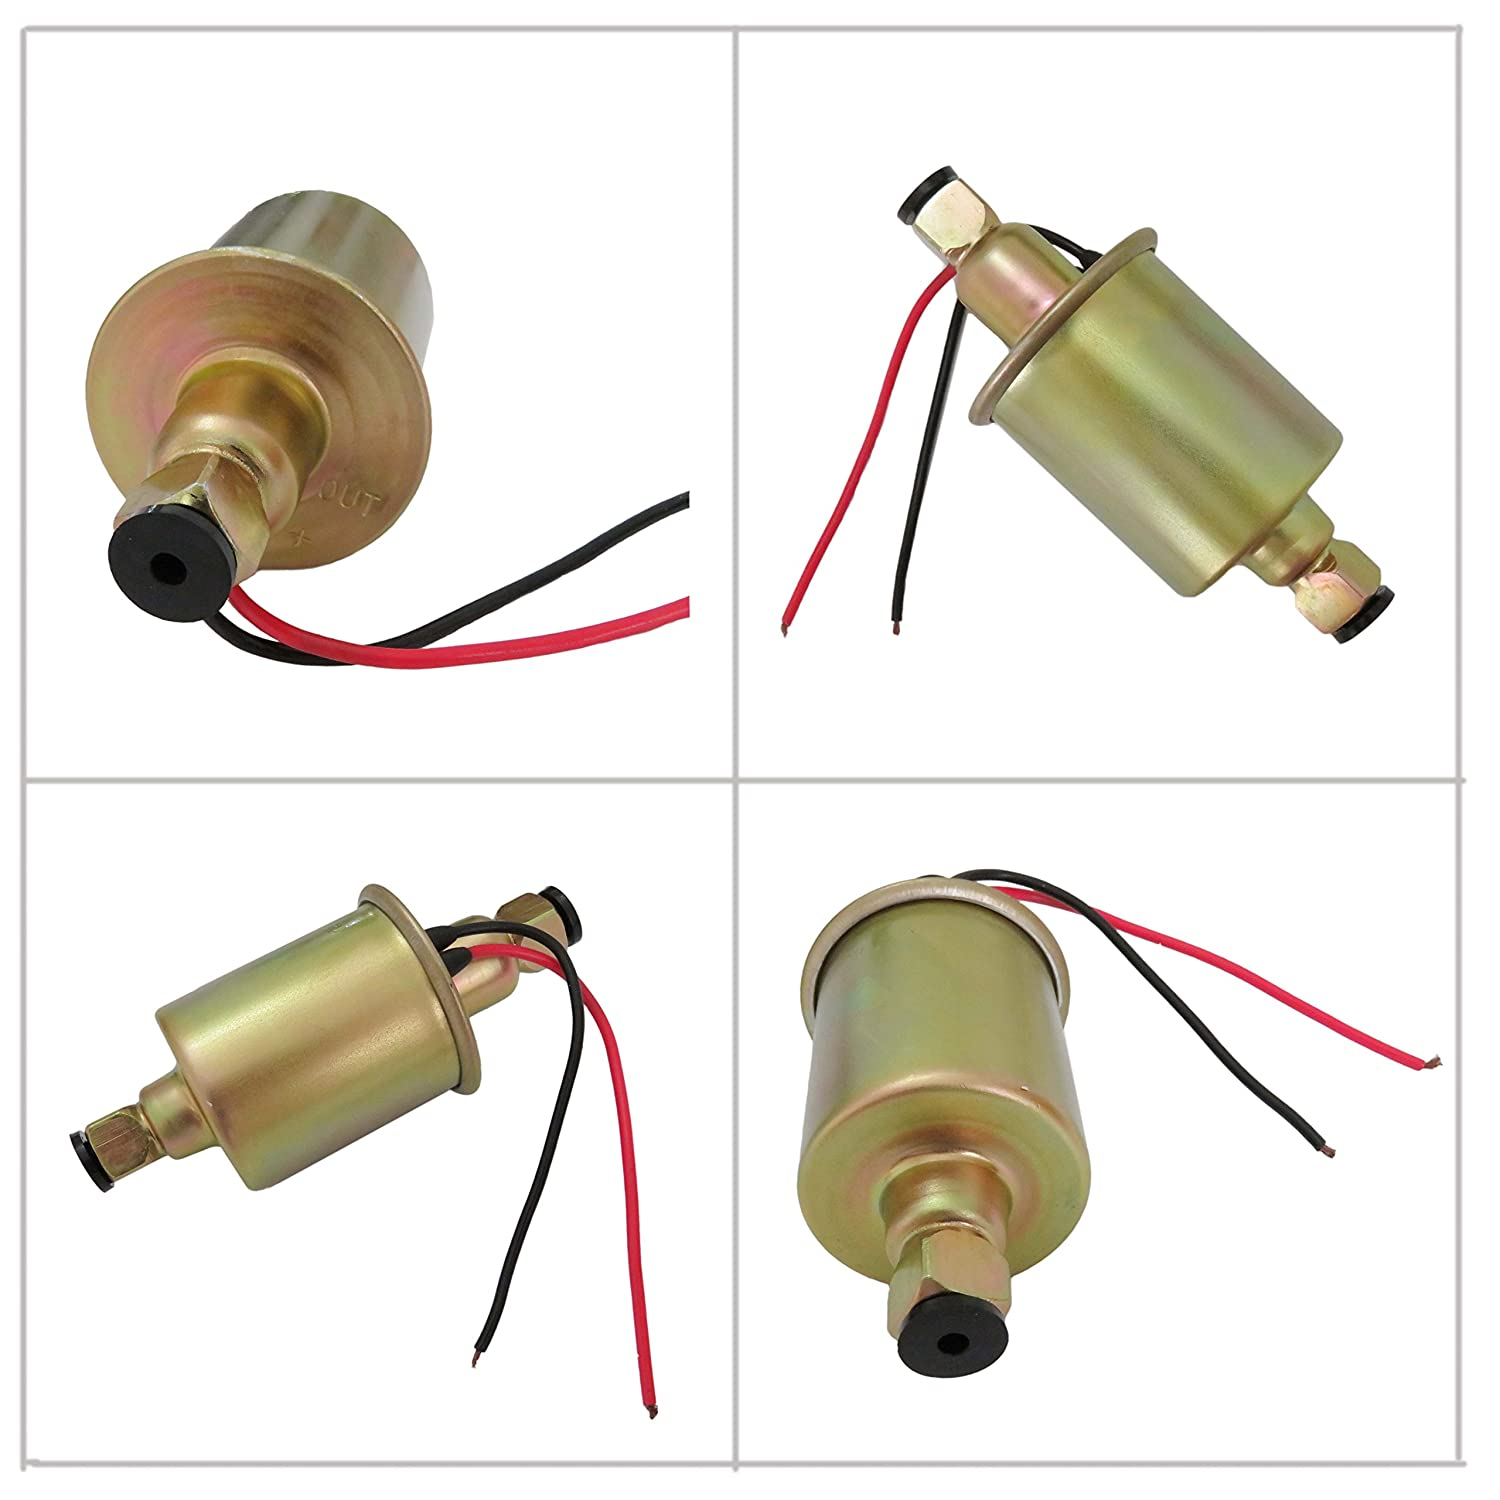 Amazoncom New Universal Low Pressure Electric Fuel Pump For E8016s